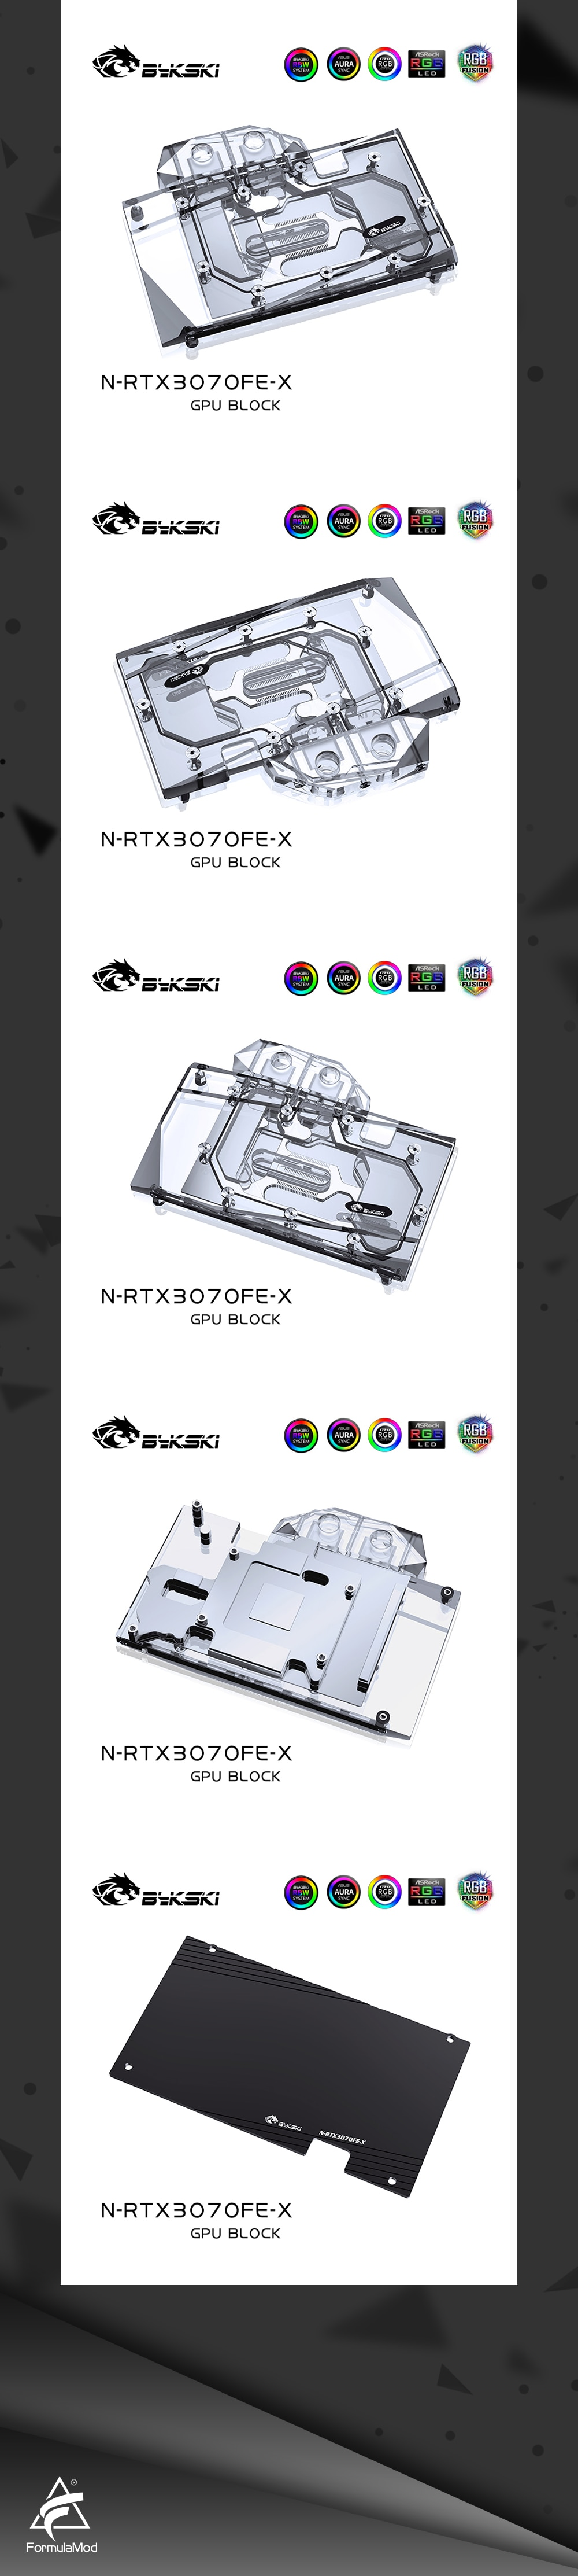 Bykski 3070 GPU Water Cooling Block For NVIDIA Founders RTX 3070 3060ti, Graphics Card Liquid Cooler System, N-RTX3070FE-X